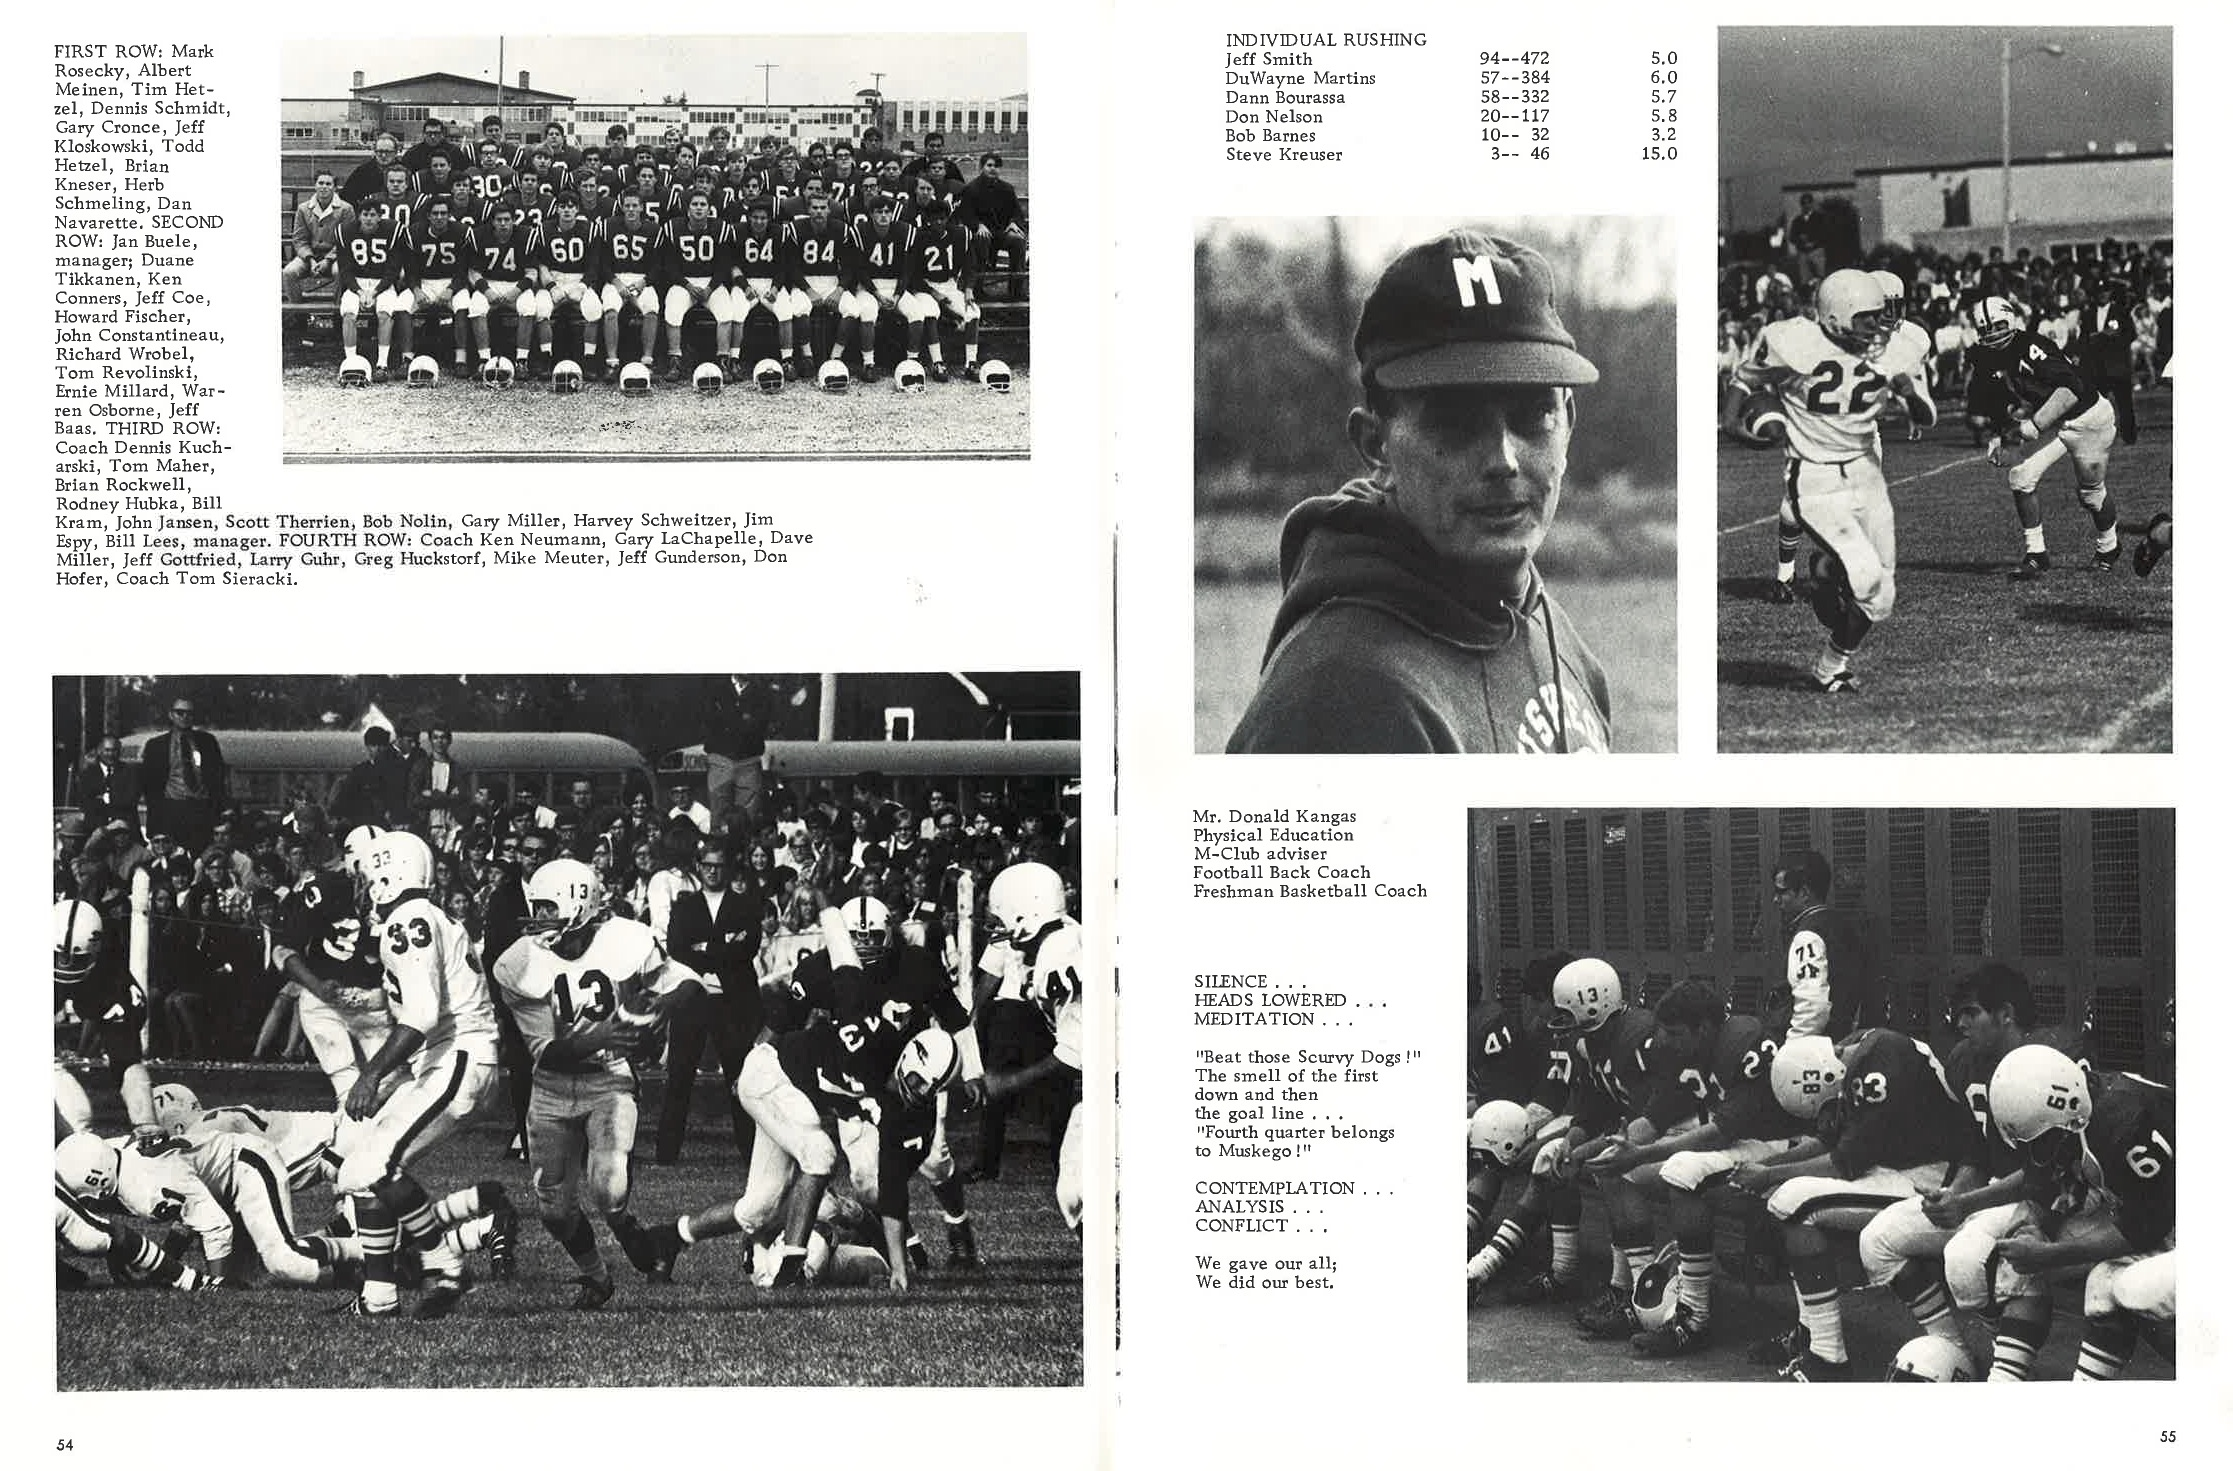 1970_Yearbook_54-55.jpg